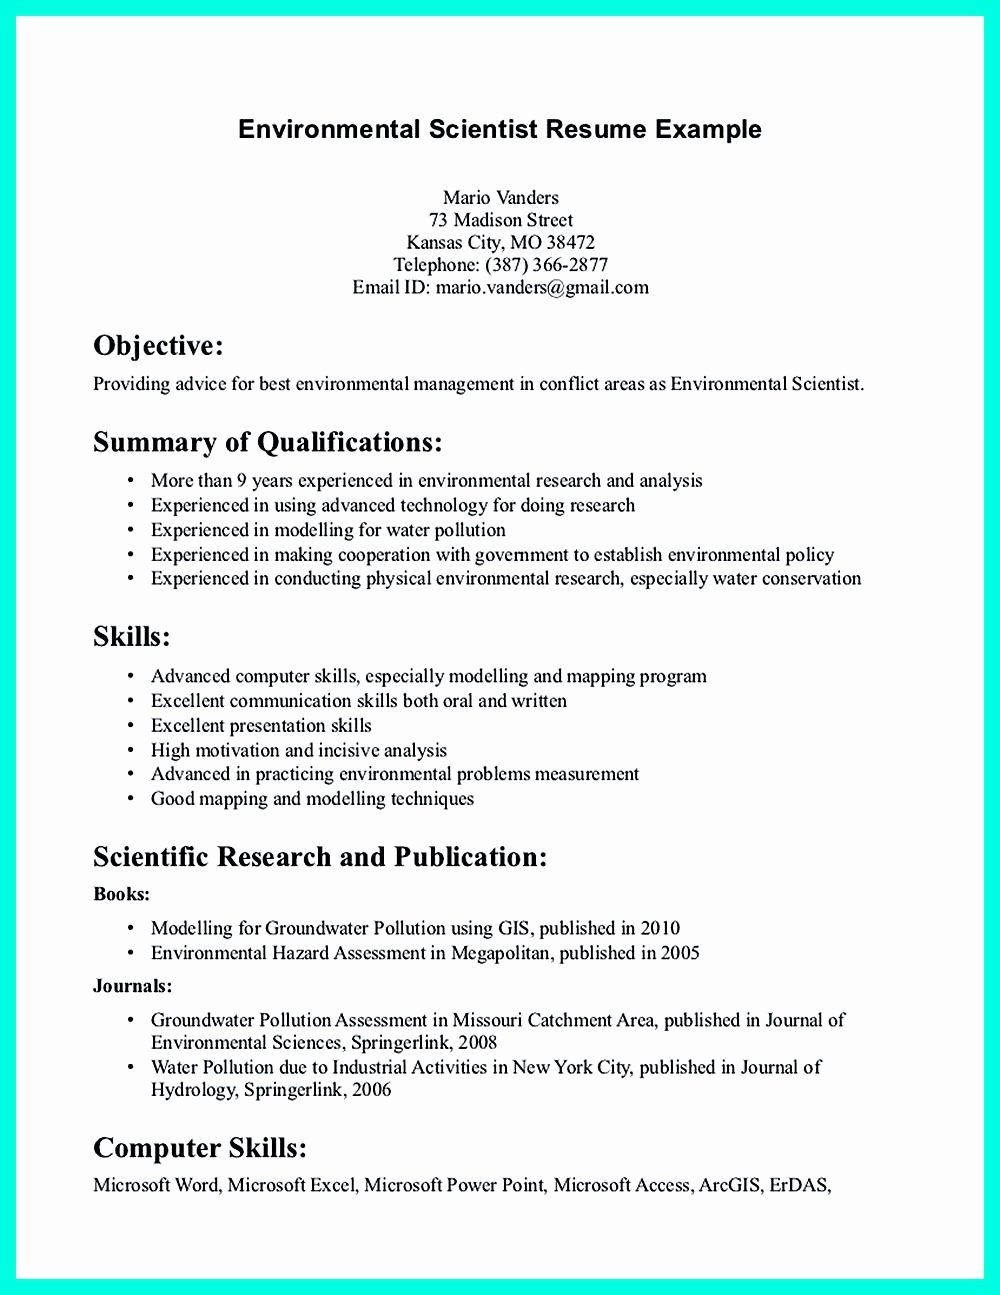 20 data analyst resume summary in 2020 with images